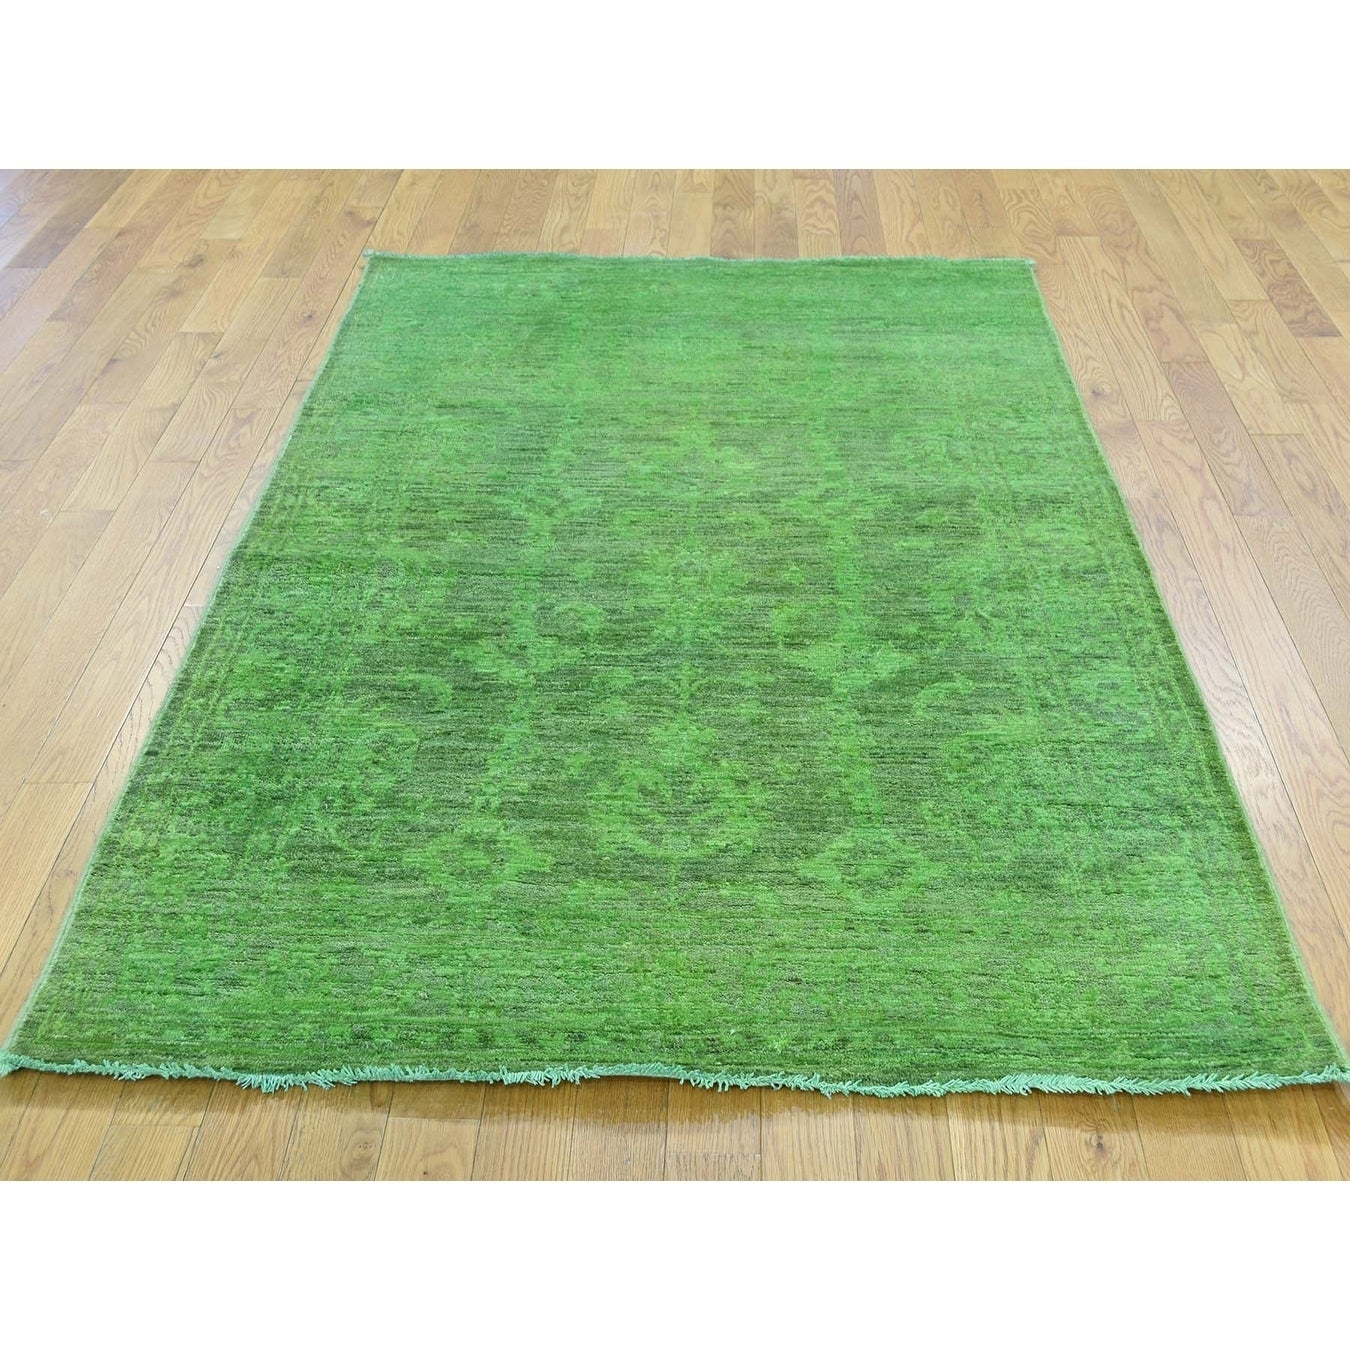 Hand Knotted Green Overdyed & Vintage with Wool Oriental Rug - 41 x 62